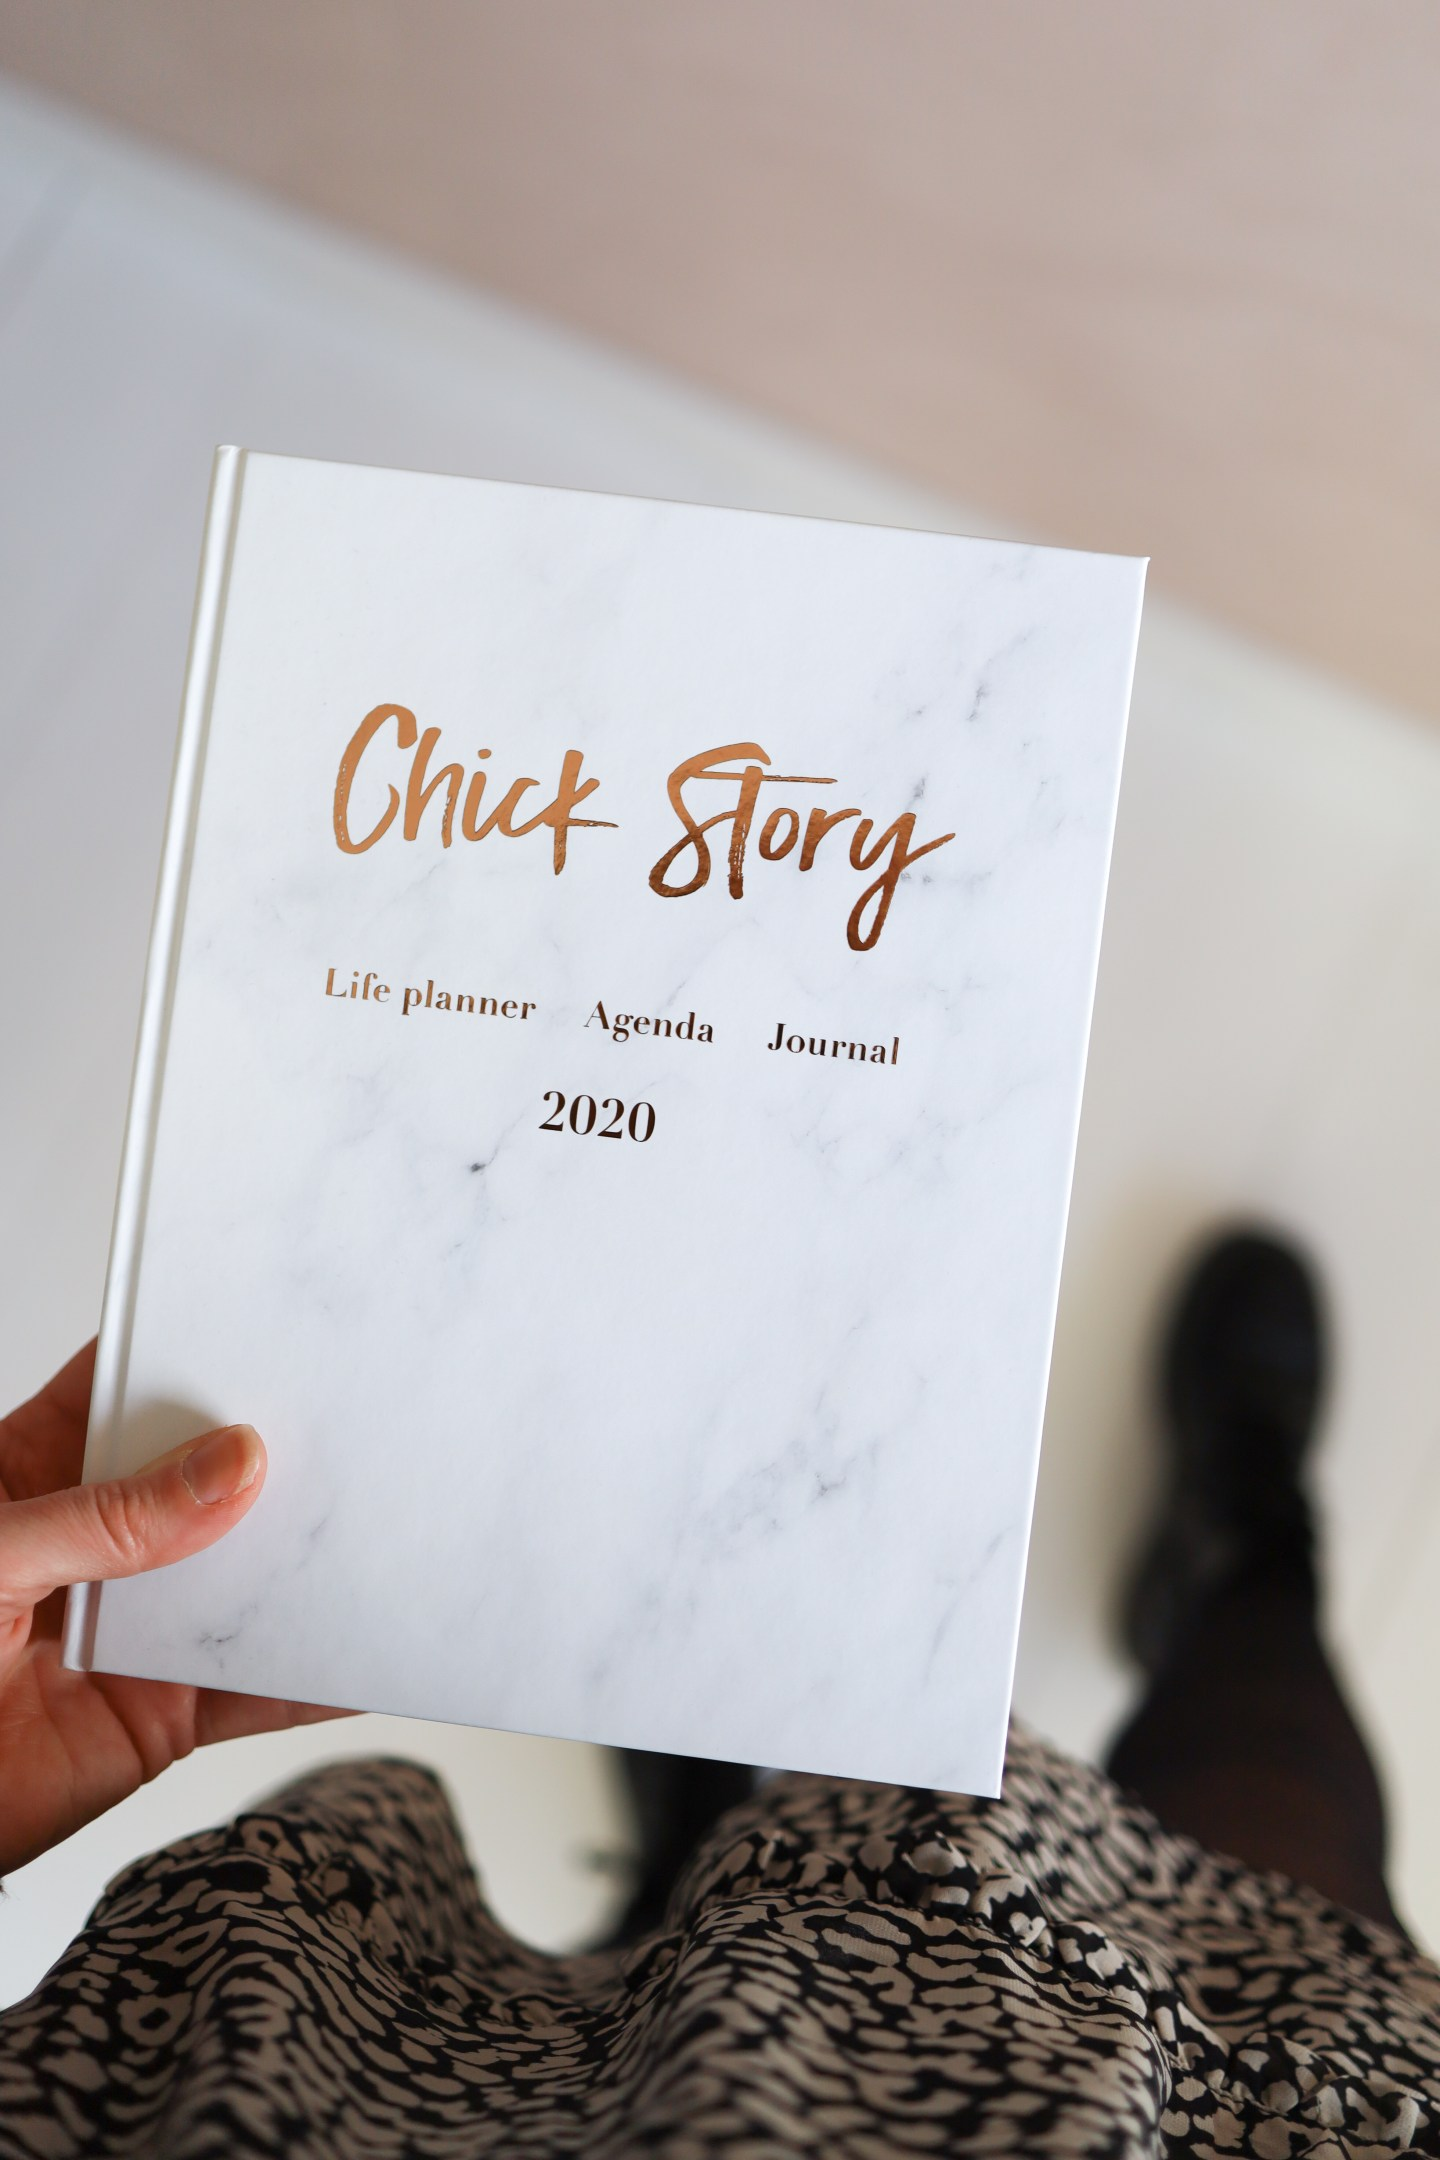 chick story life planner